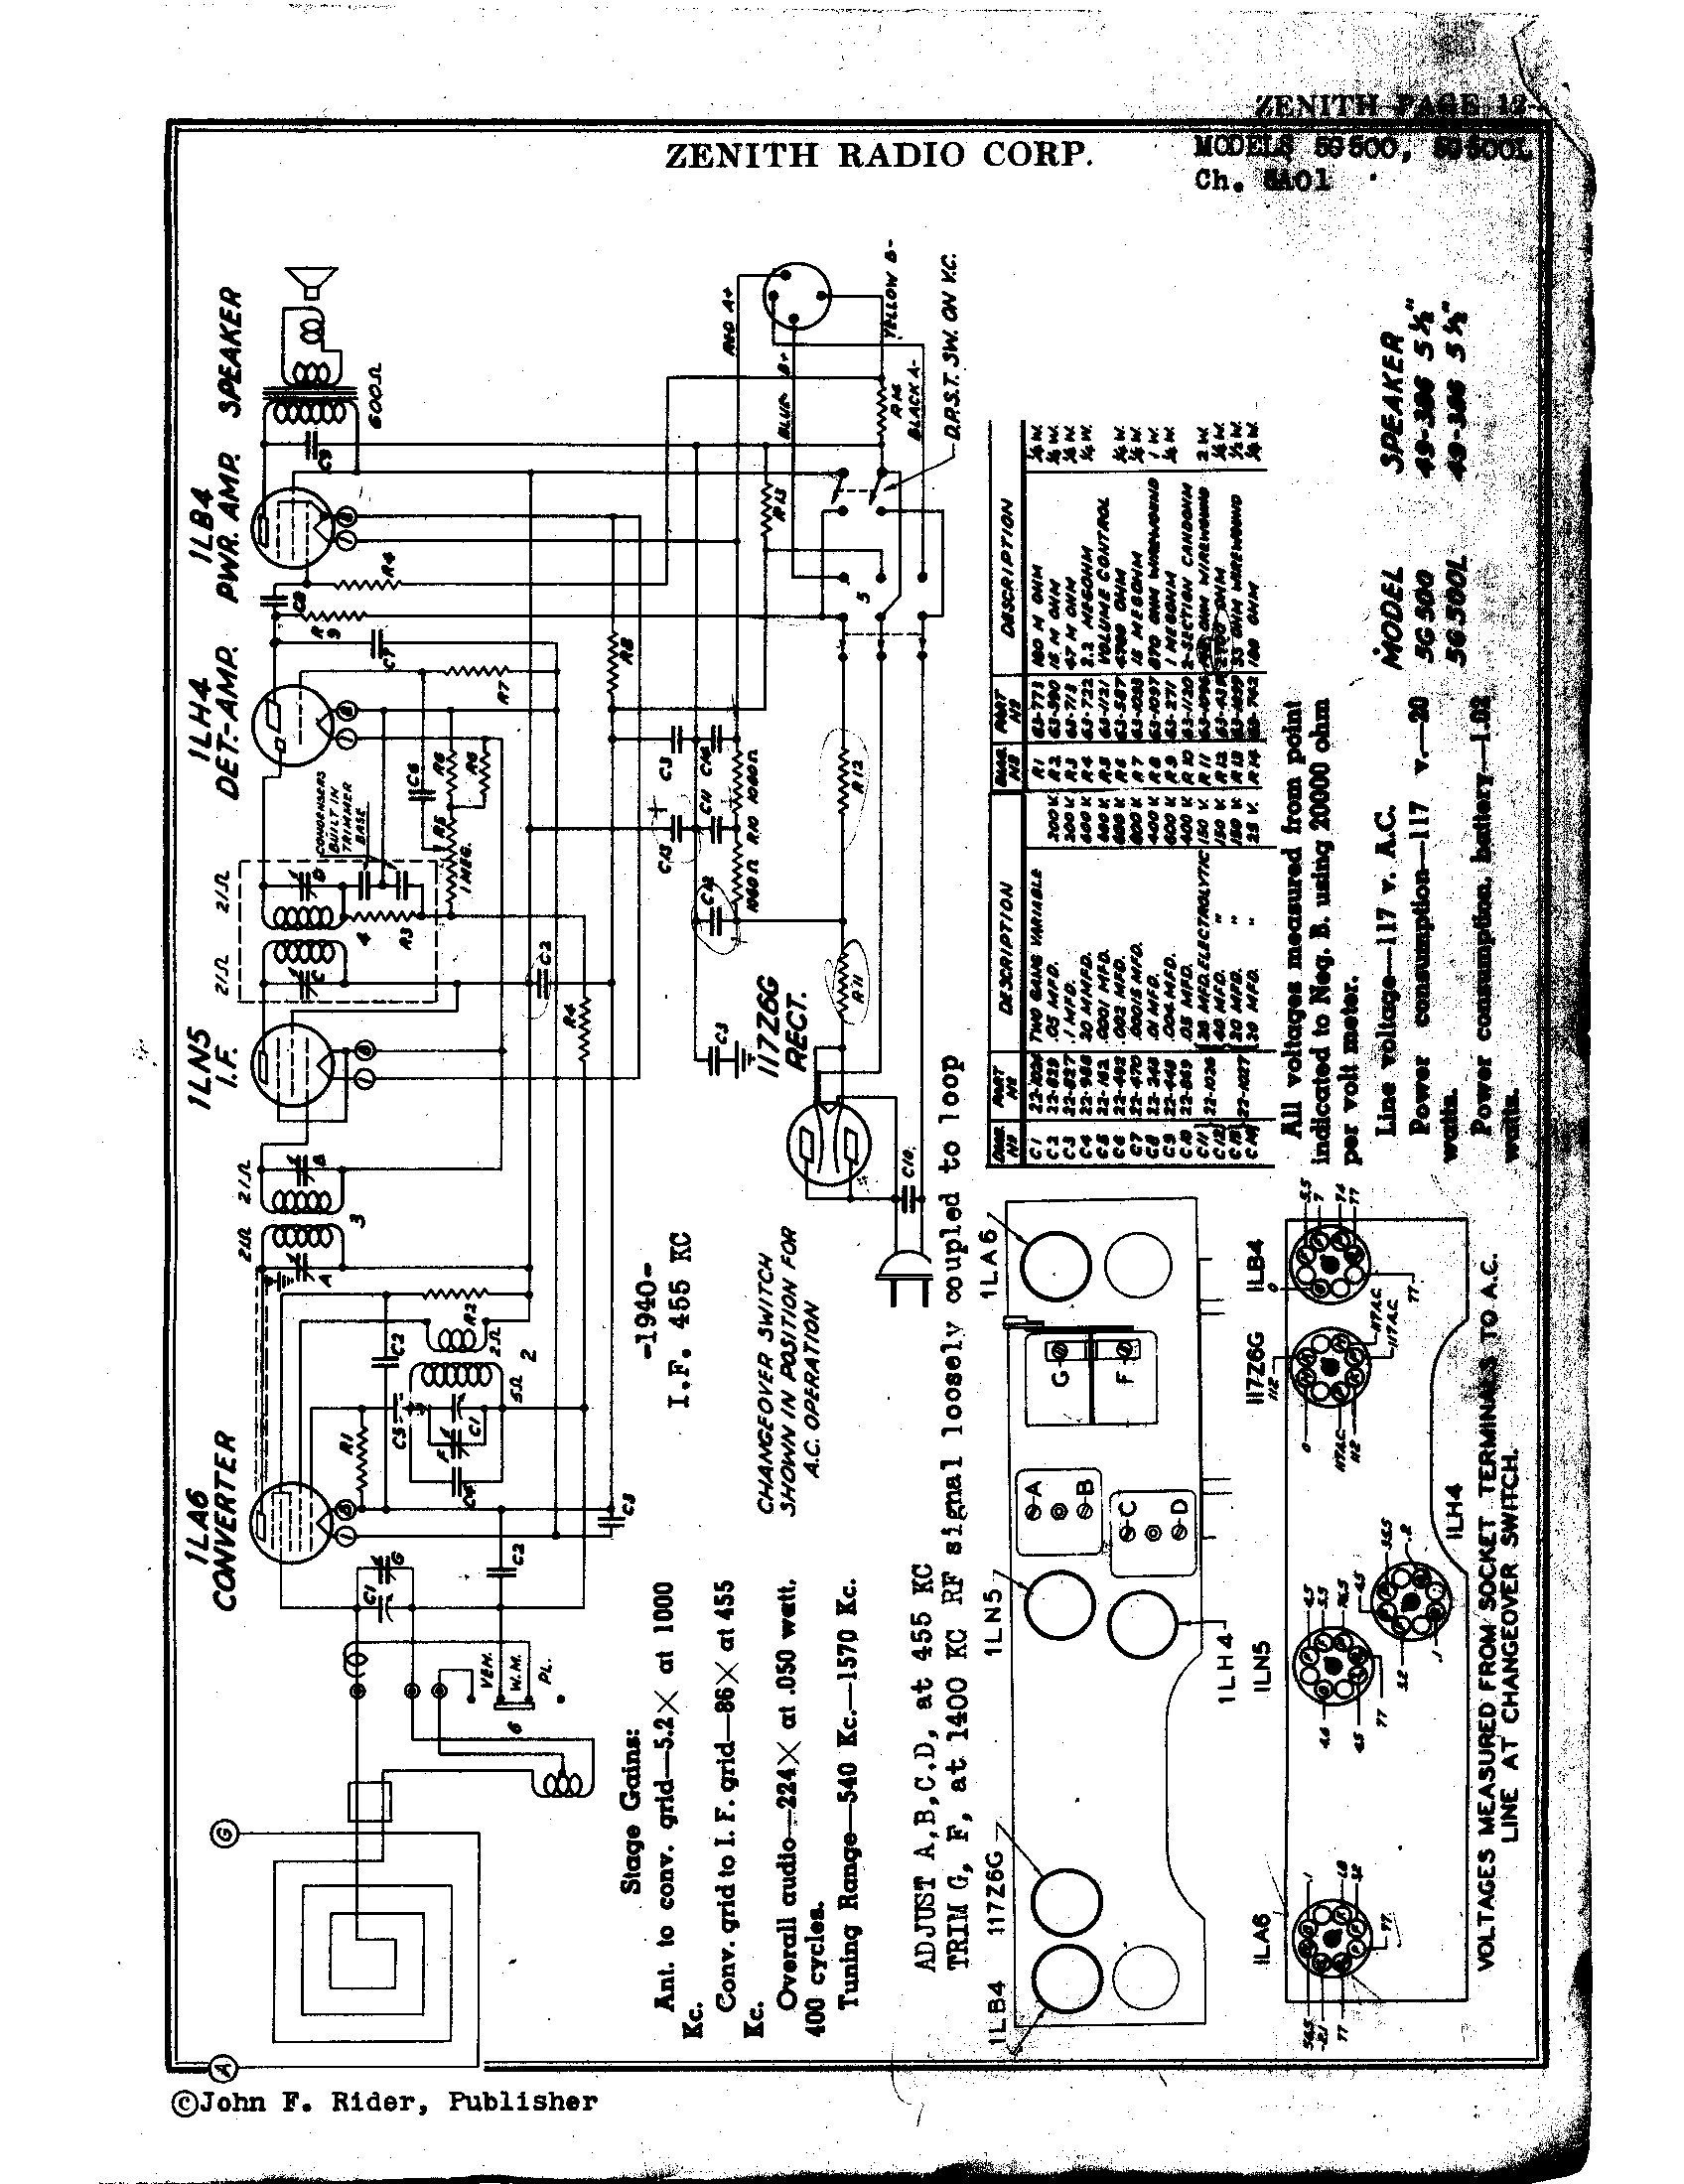 Zenith Radio Corp 5g500 Antique Electronic Supply. Page 1 9874 Kb Rider Manual Volume 12. Wiring. Zenith Tube Radio Schematics N73 1 At Scoala.co